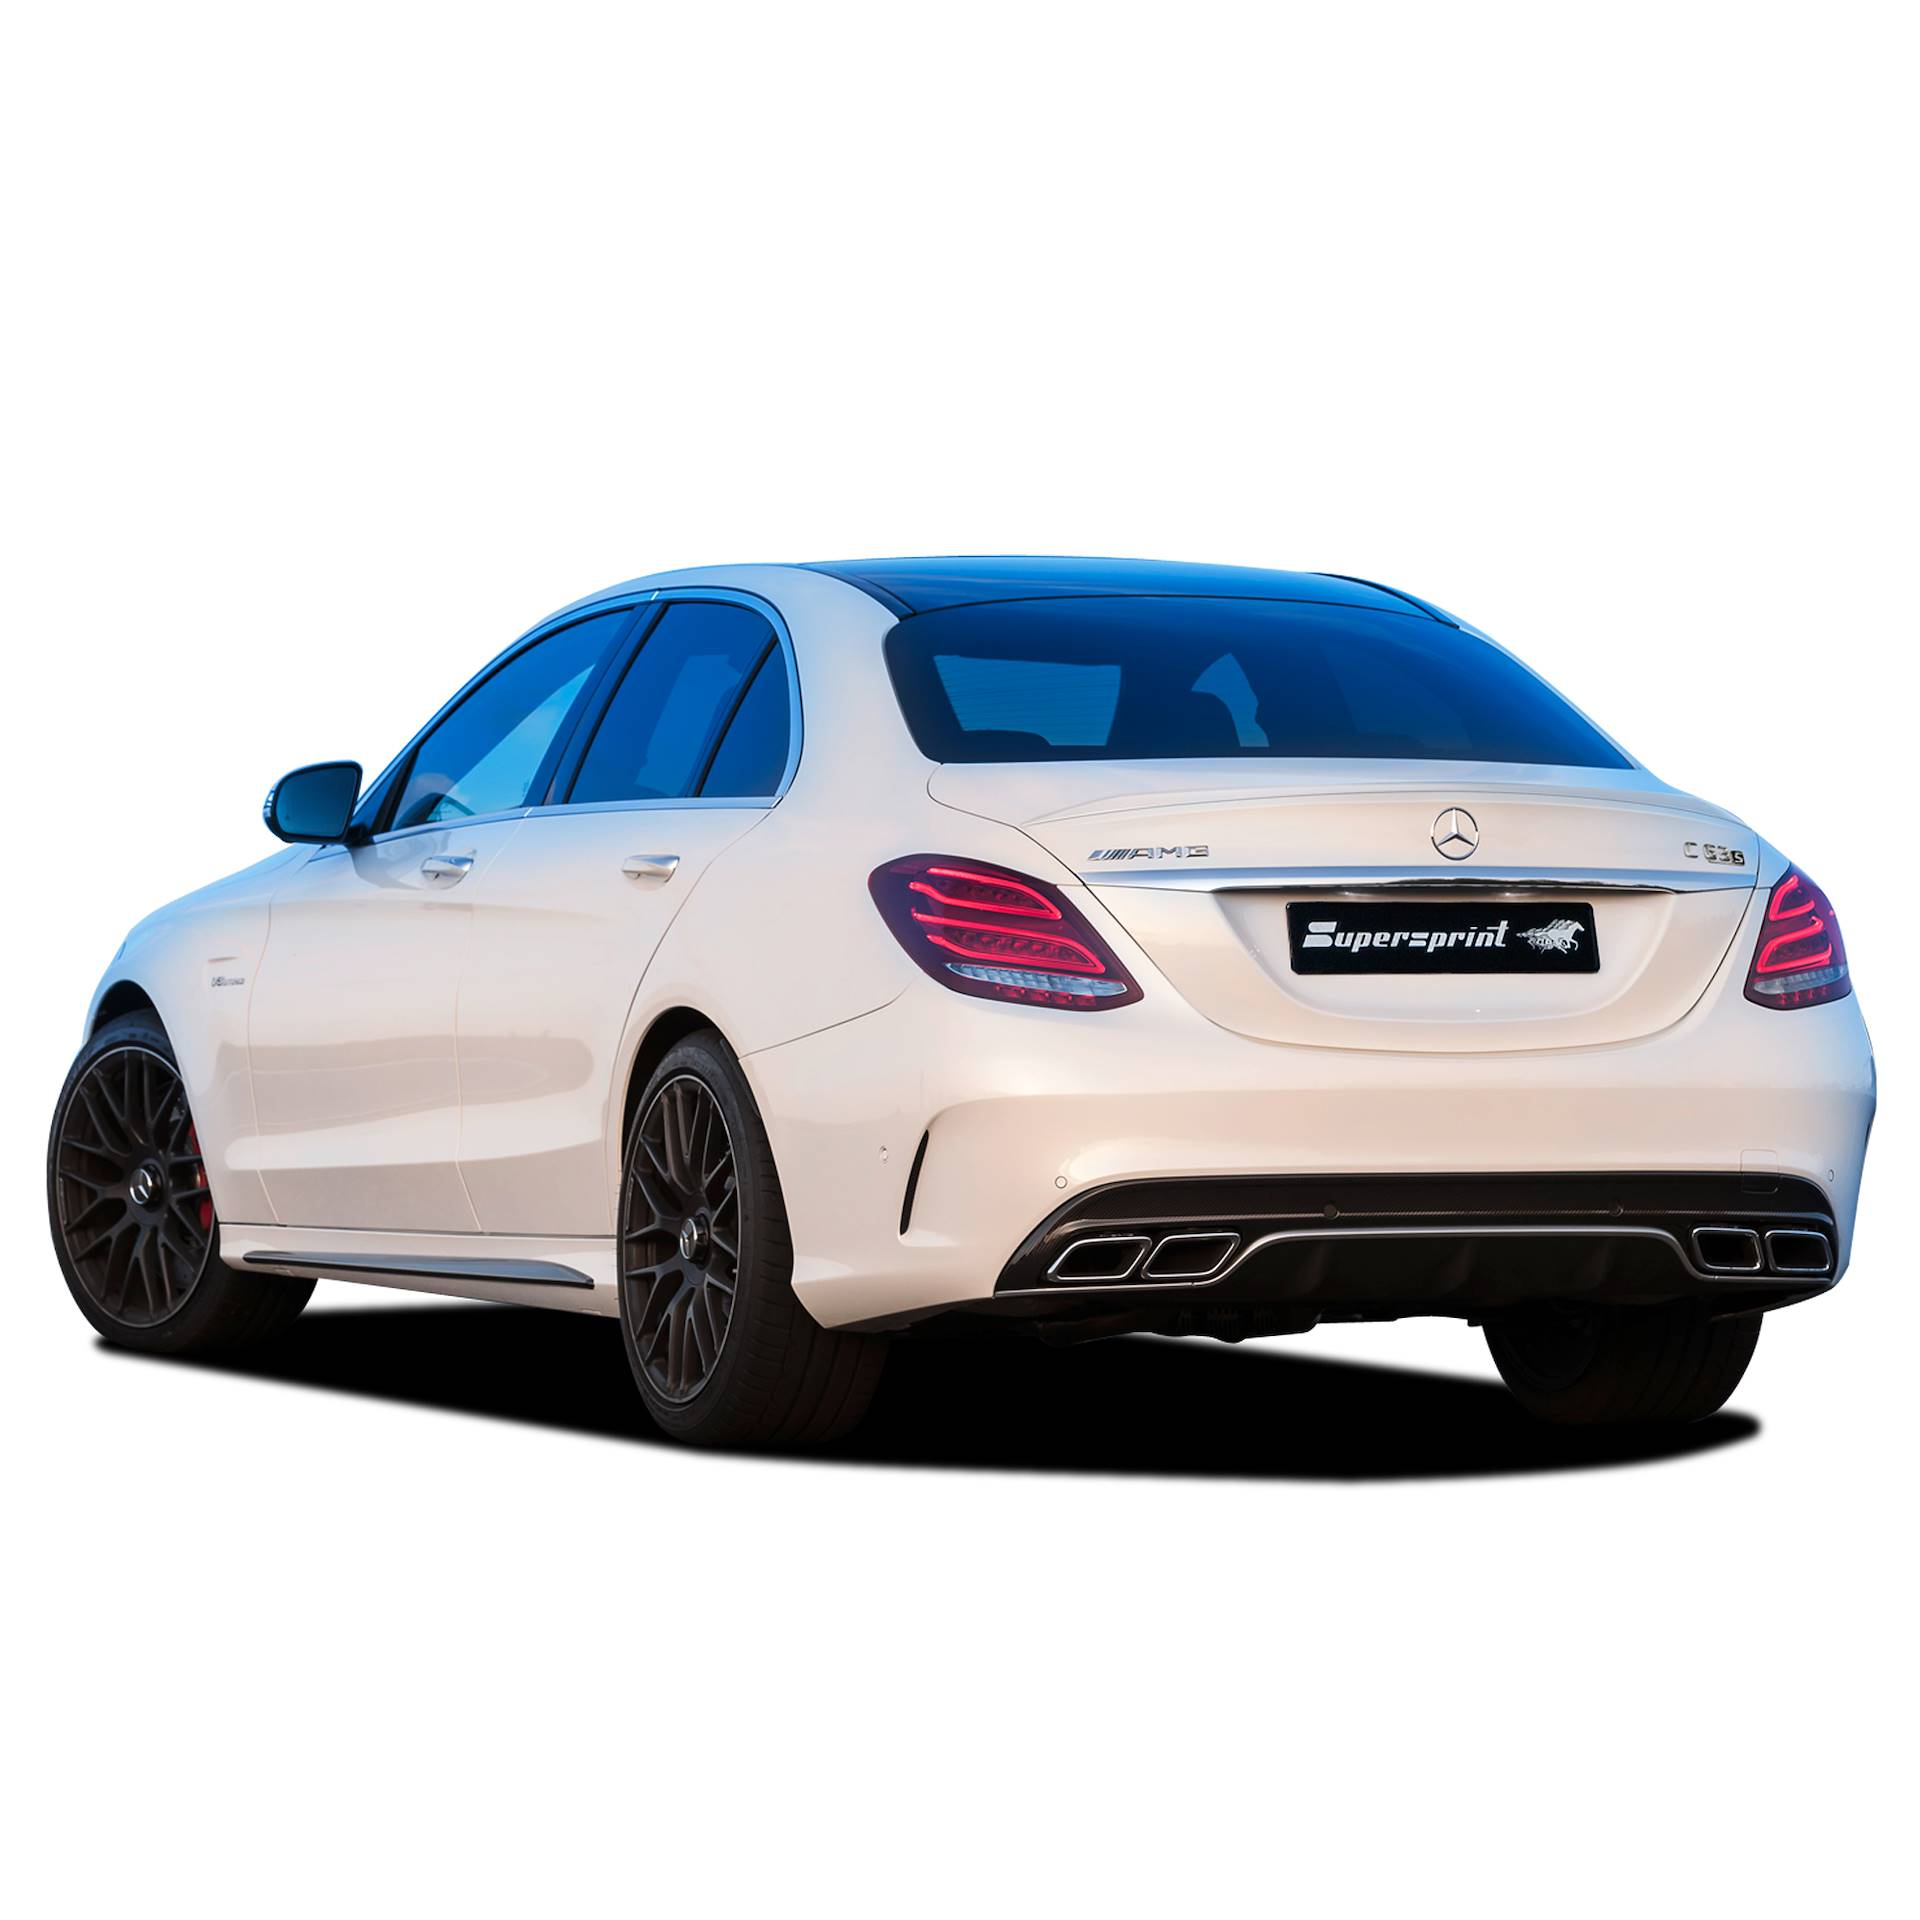 Performance Sport Exhaust For Mercedes C63 S AMG 4-Matic